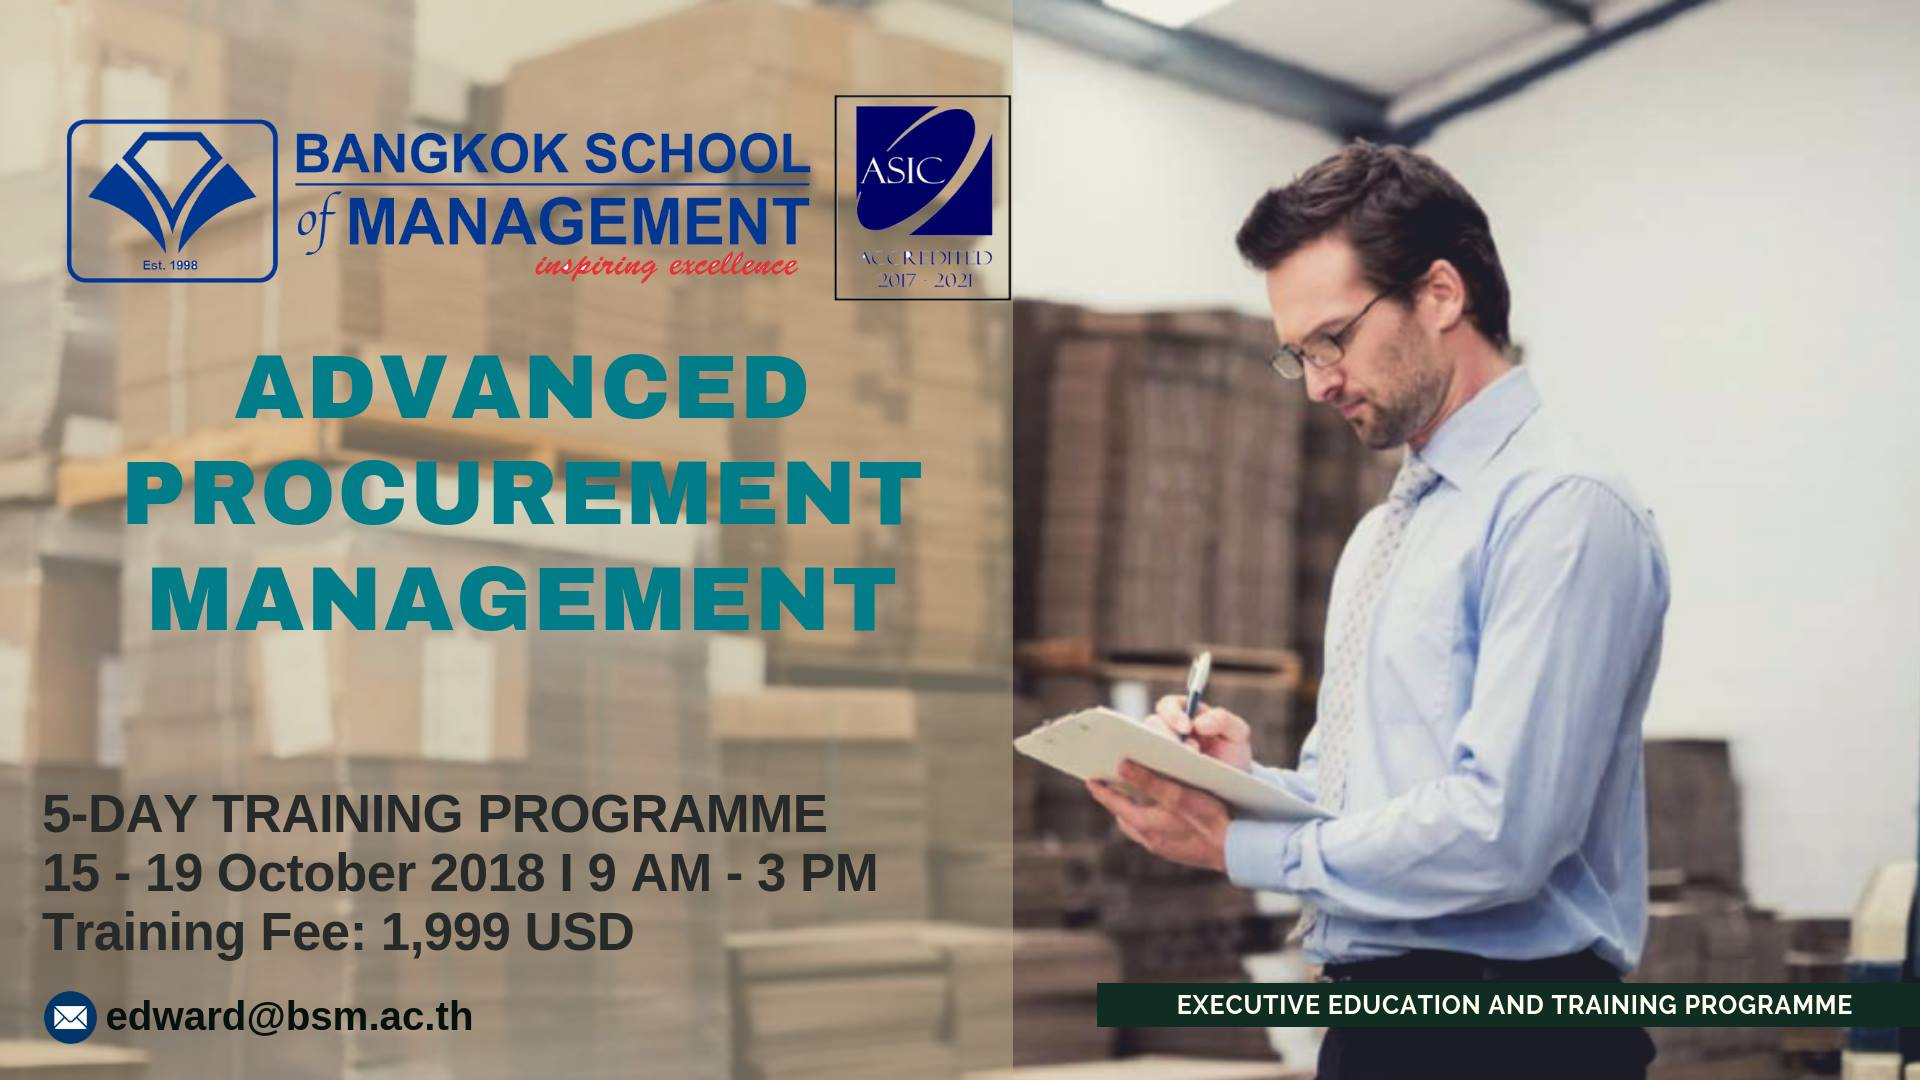 Date: October 15 – 19, 2018Training Programme: Advanced Procurement Management